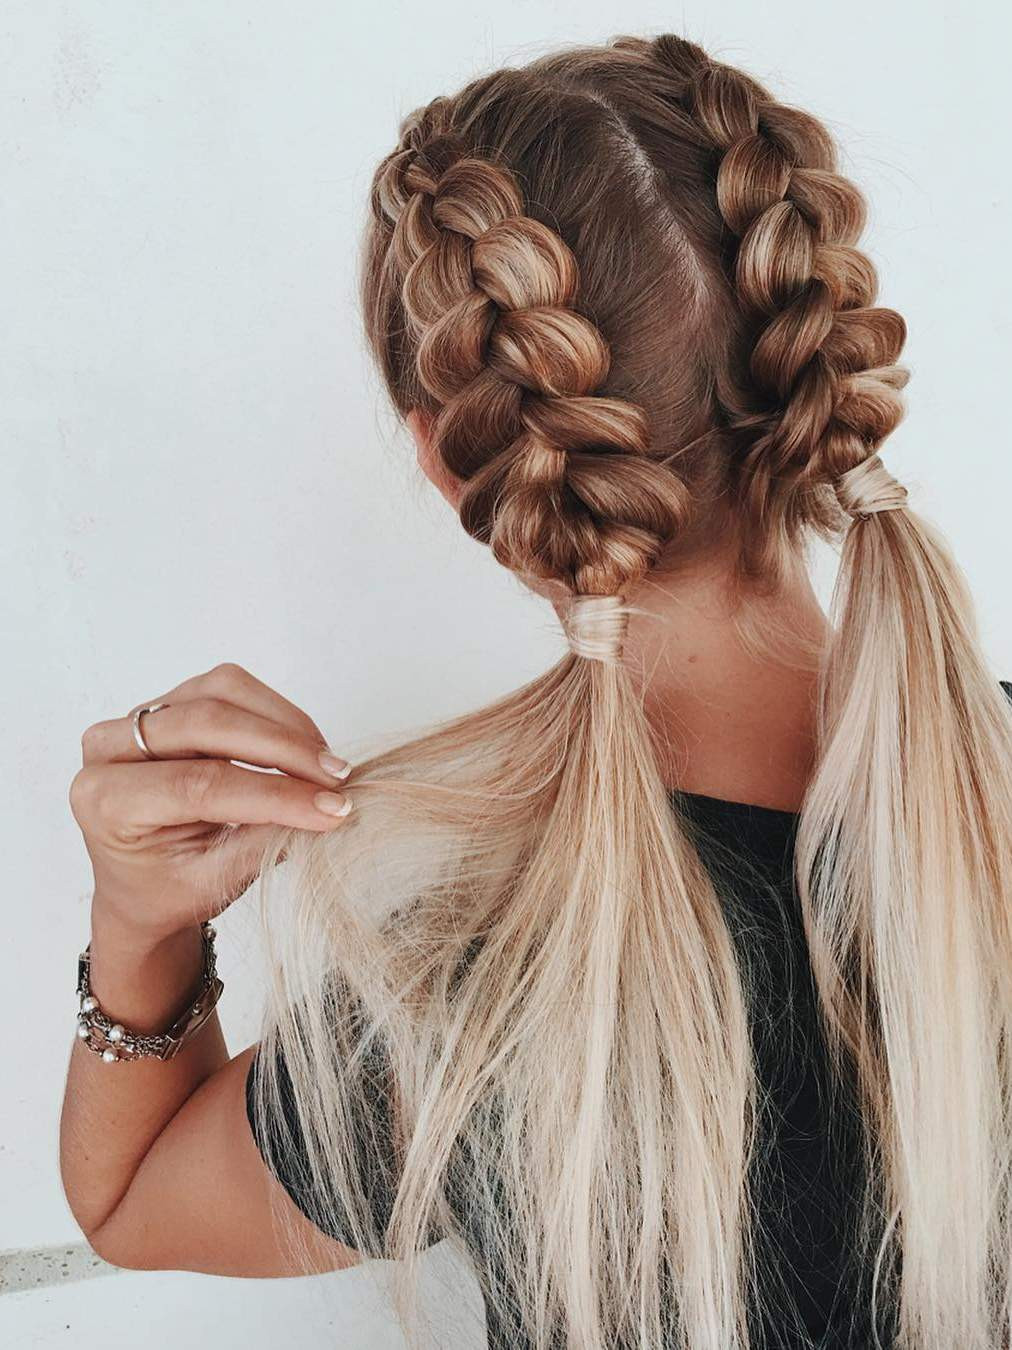 Best ideas about Cute White Girl Hairstyles . Save or Pin 7 Braided Hairstyles That People Are Loving on Pinterest Now.